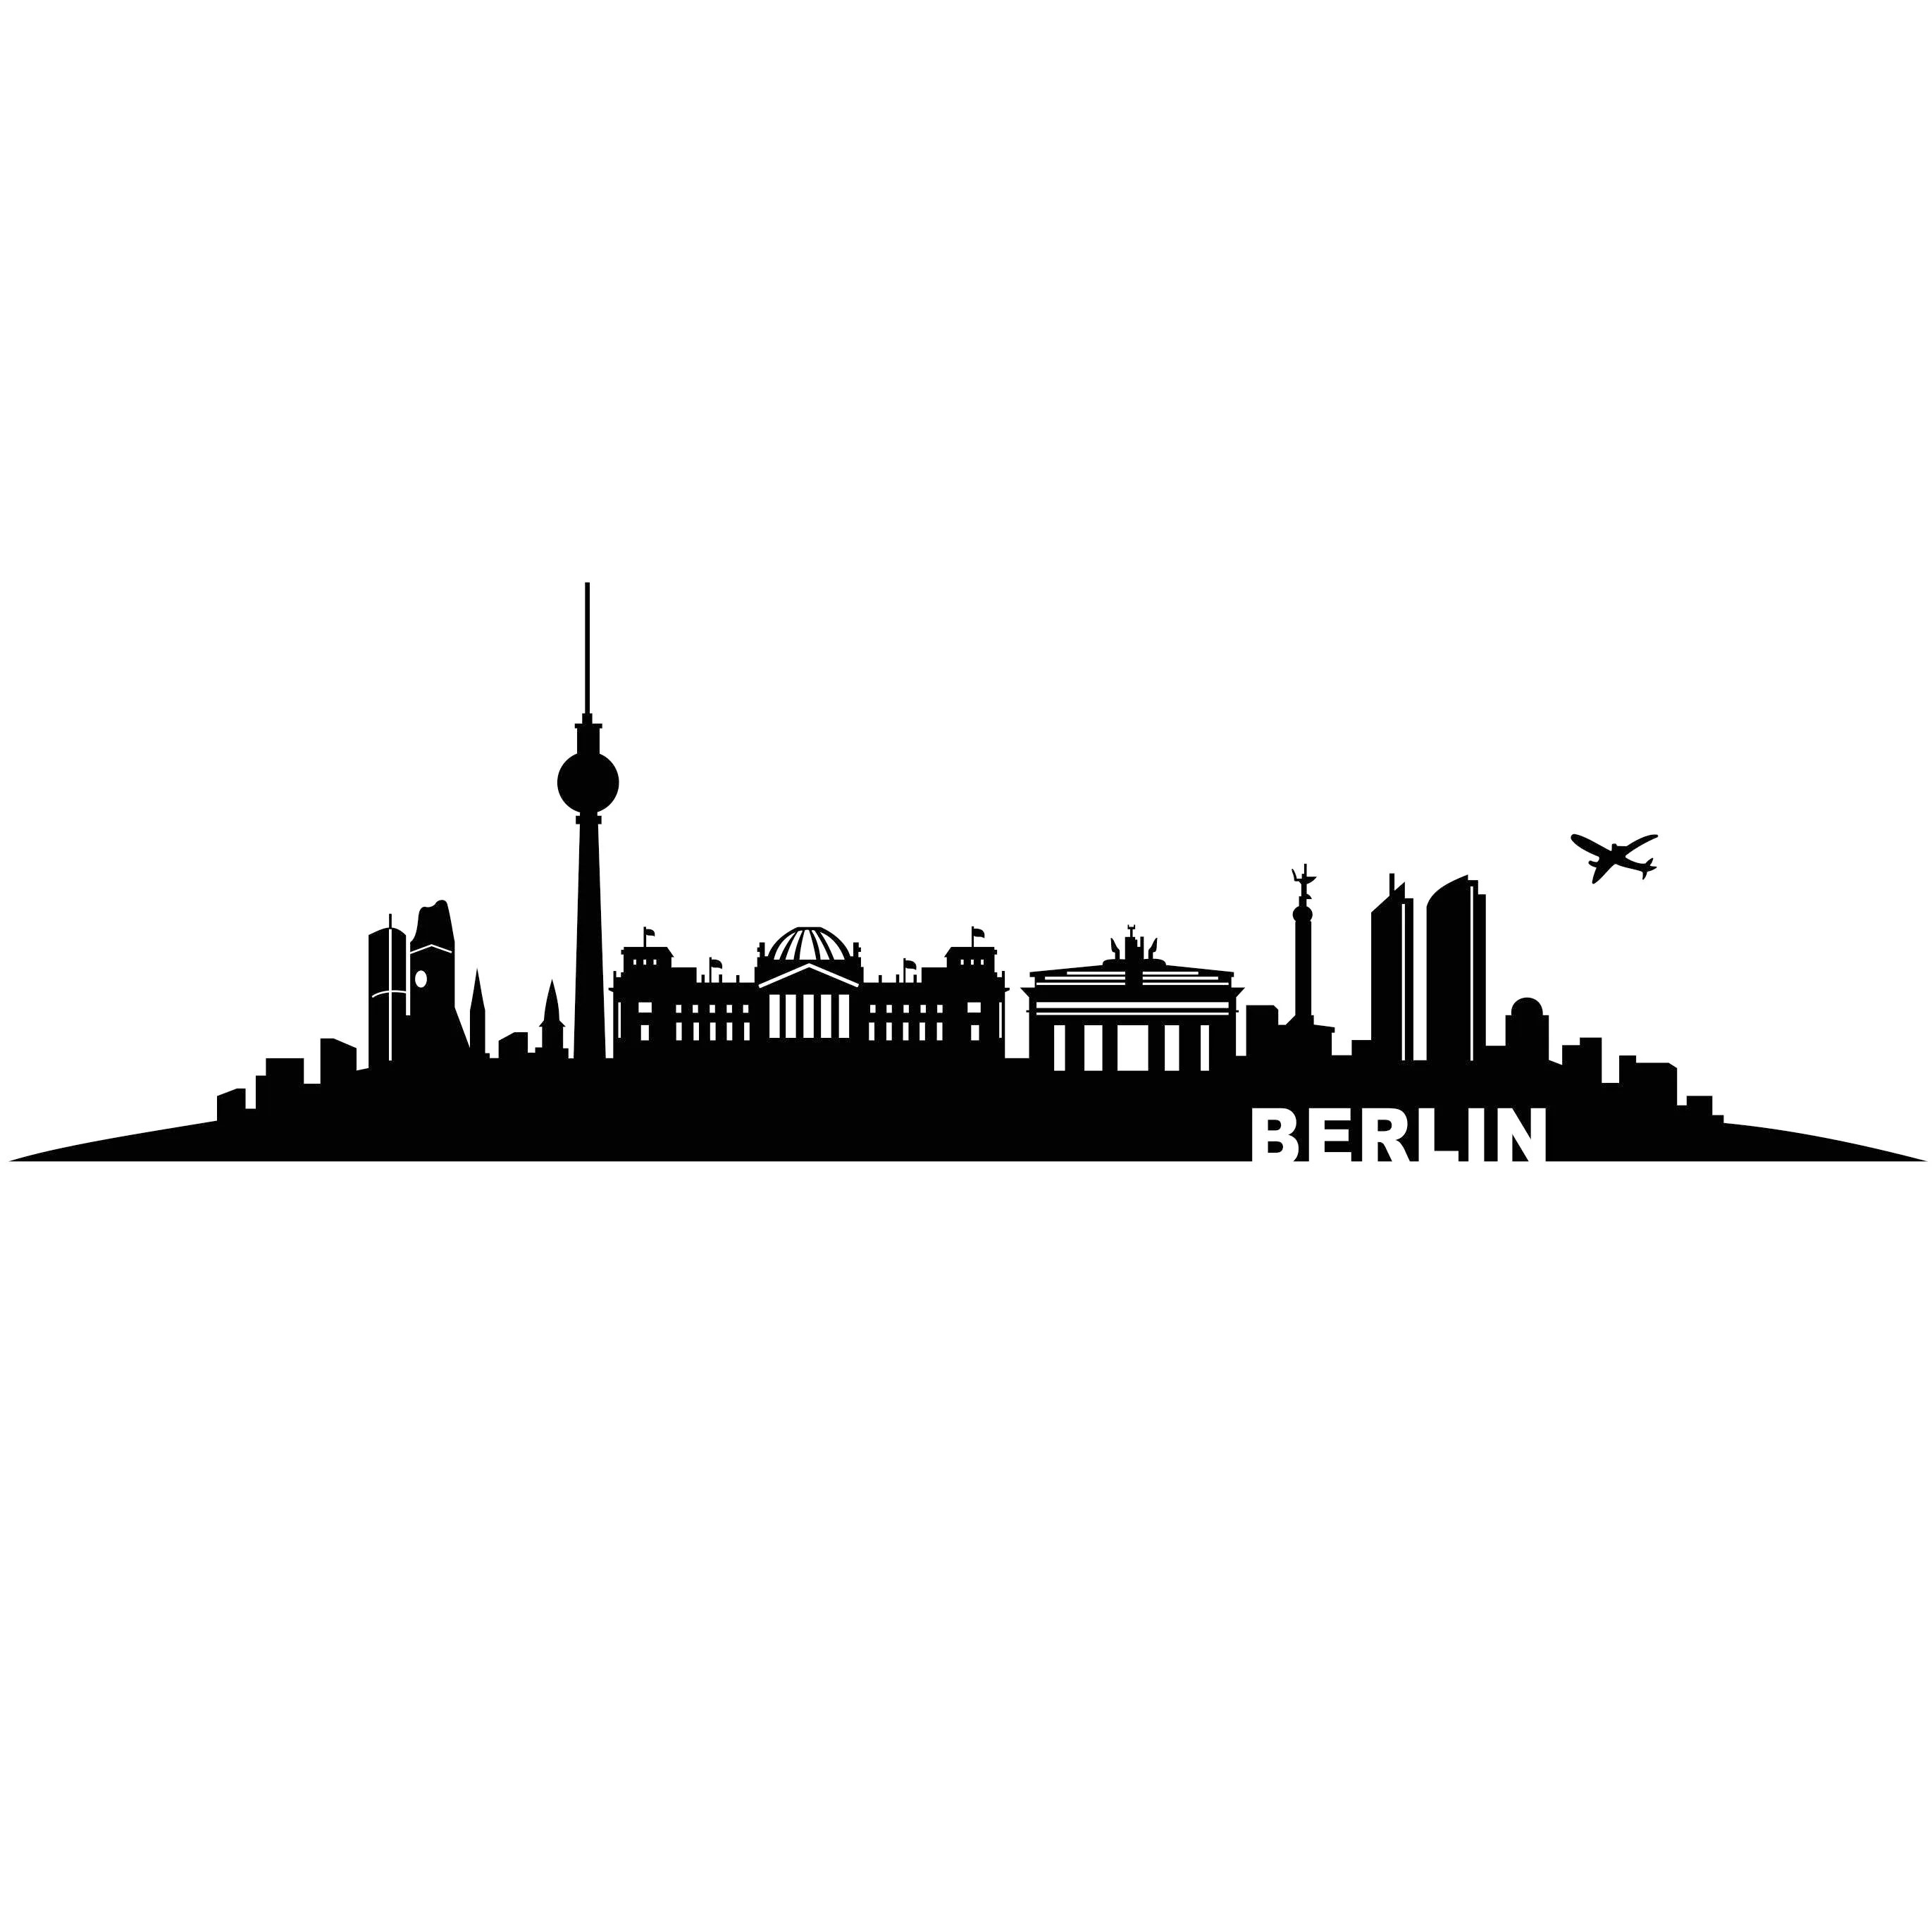 Berlin City Germany Graphics Svg Dxf Eps Cdr Ai Vector